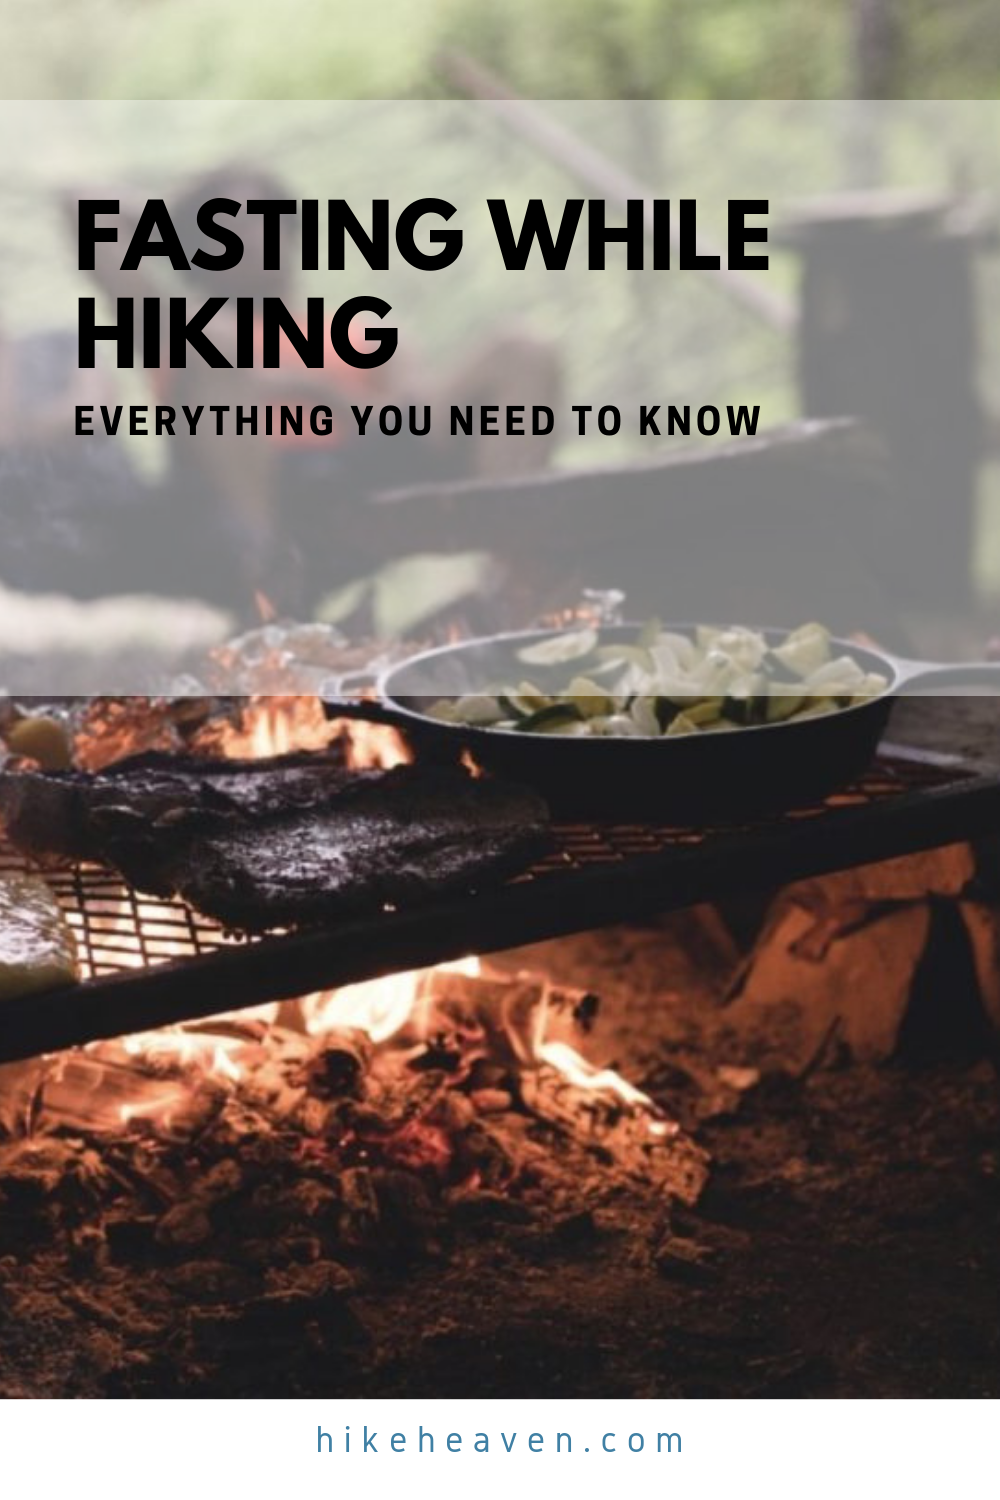 Learn everything you need to know about fasting while hiking! #hiking #fasting